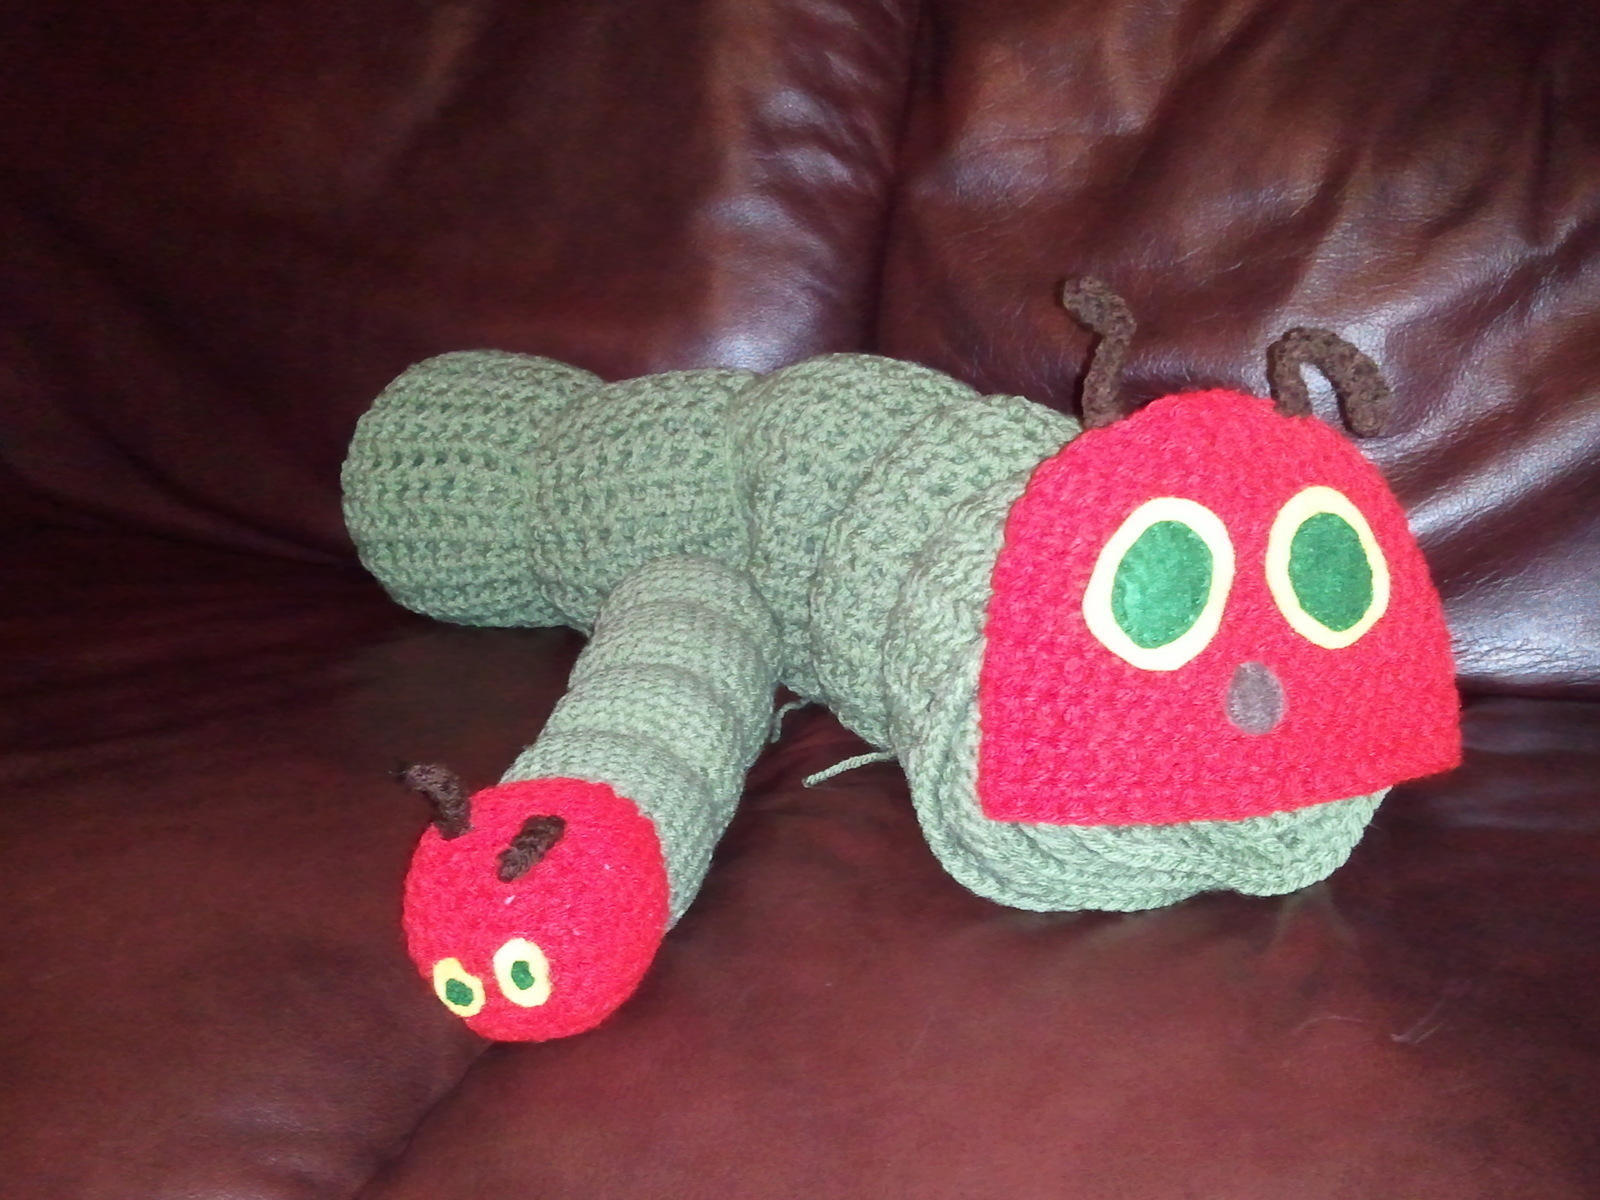 The Very Hungry Caterpillar Crochet Blanket And Toy · A Baby Blanket ...